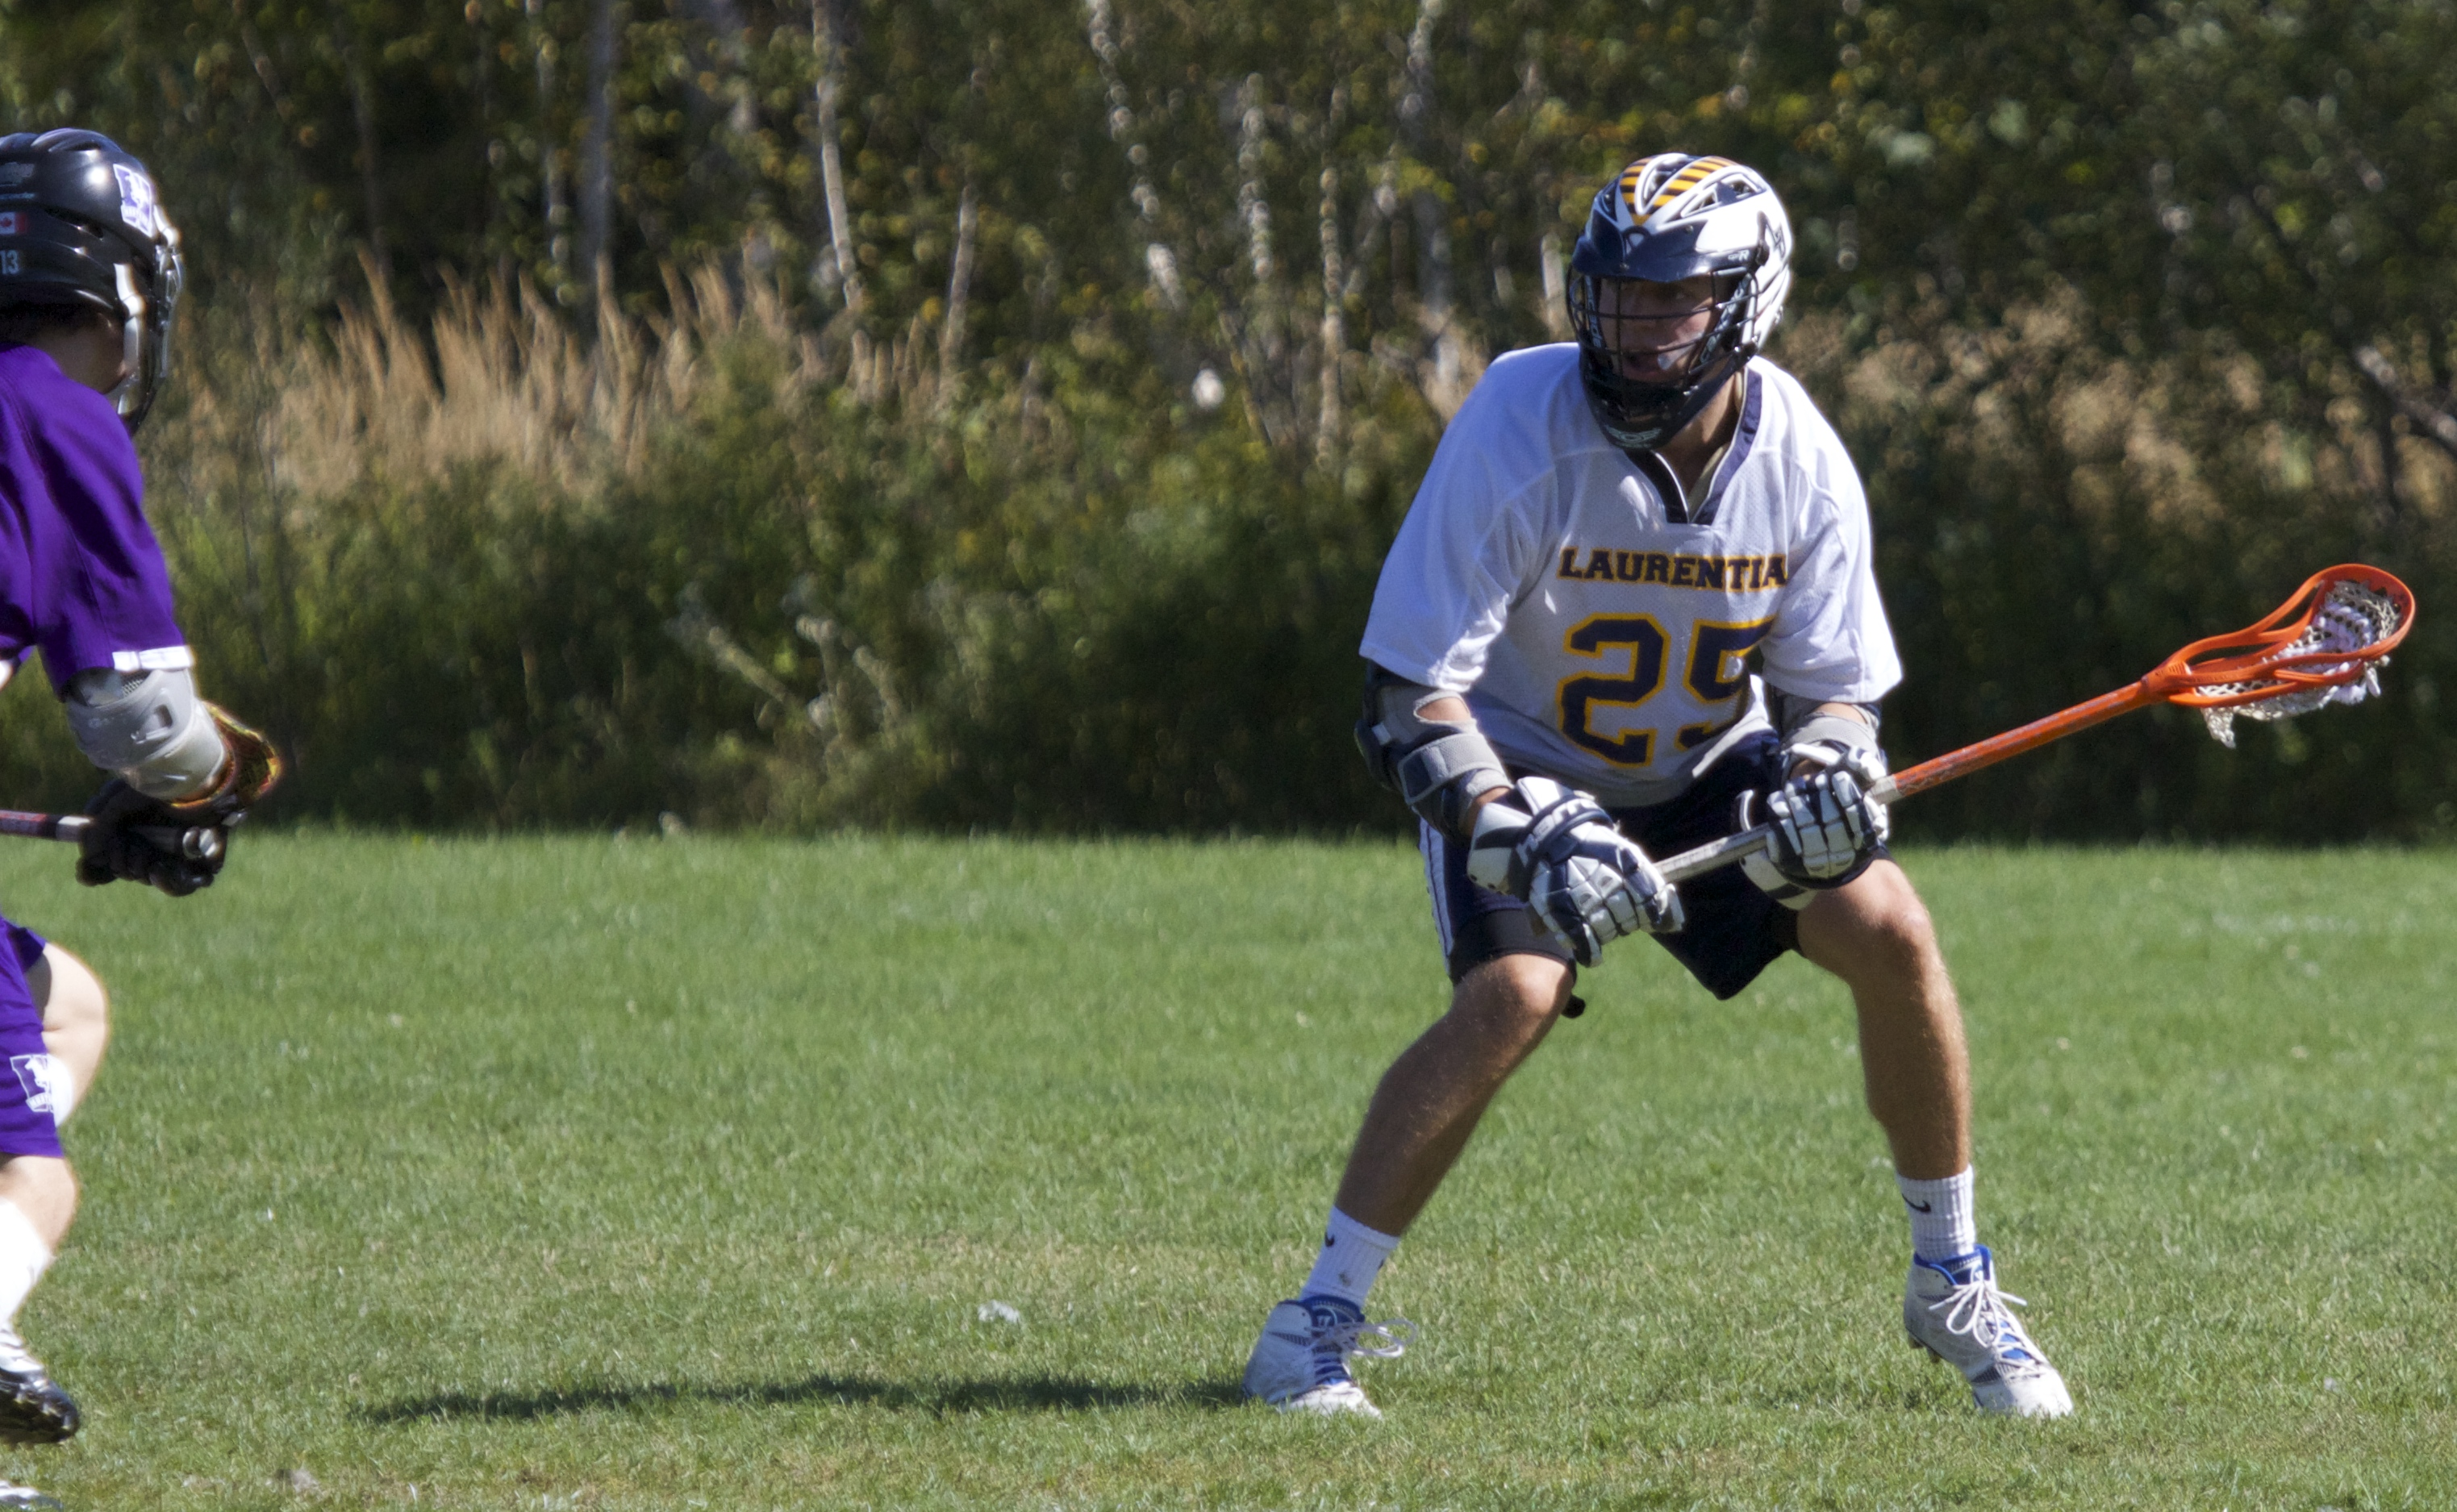 Laurentian's men's lacrosse team plays against Western Mustangs on Nov. 1. Photos by Gabriel Rodrigues